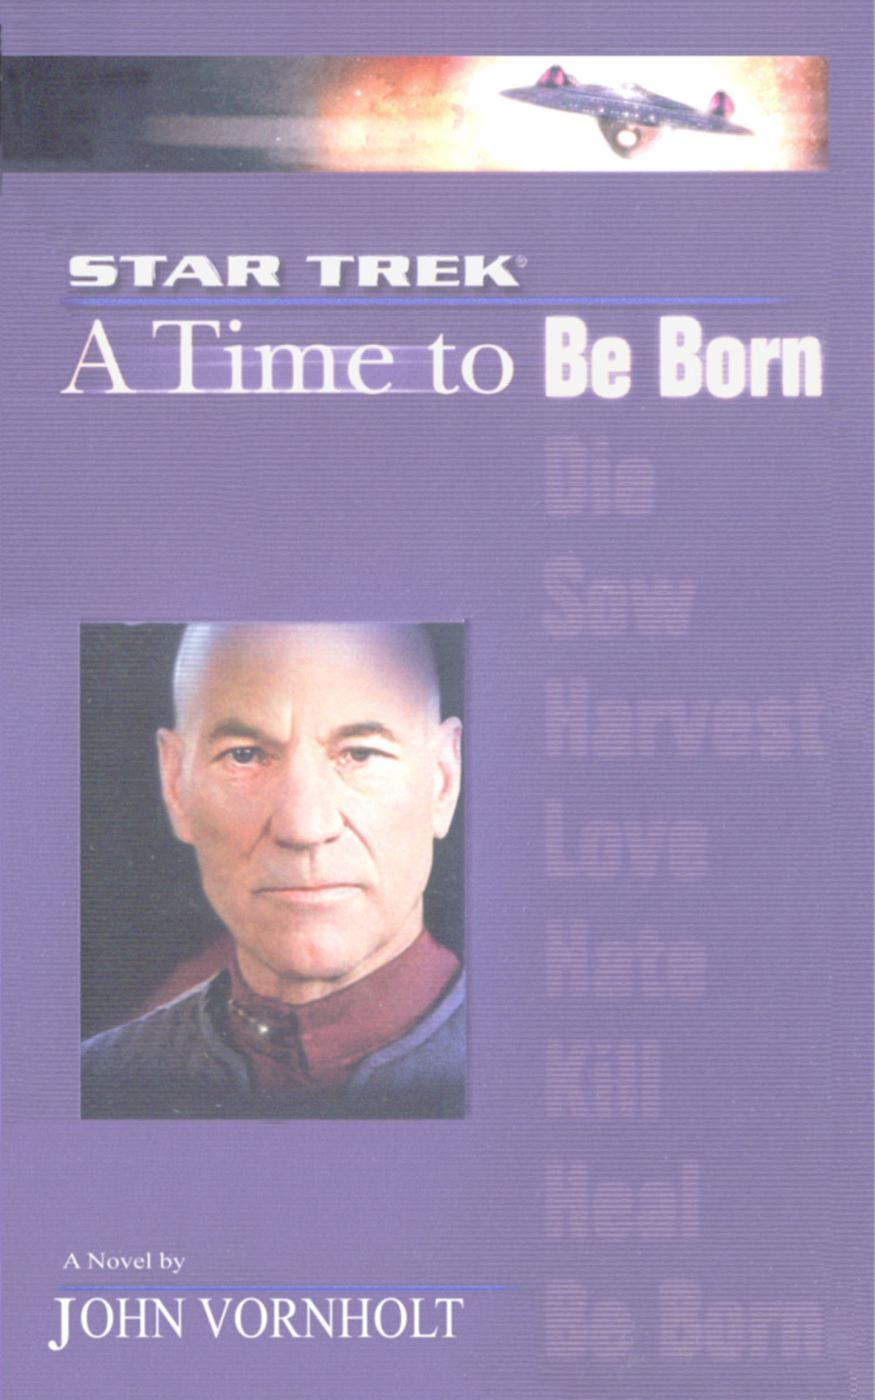 A Star Trek: The Next Generation: Time #1: A Time to Be Born By: John Vornholt